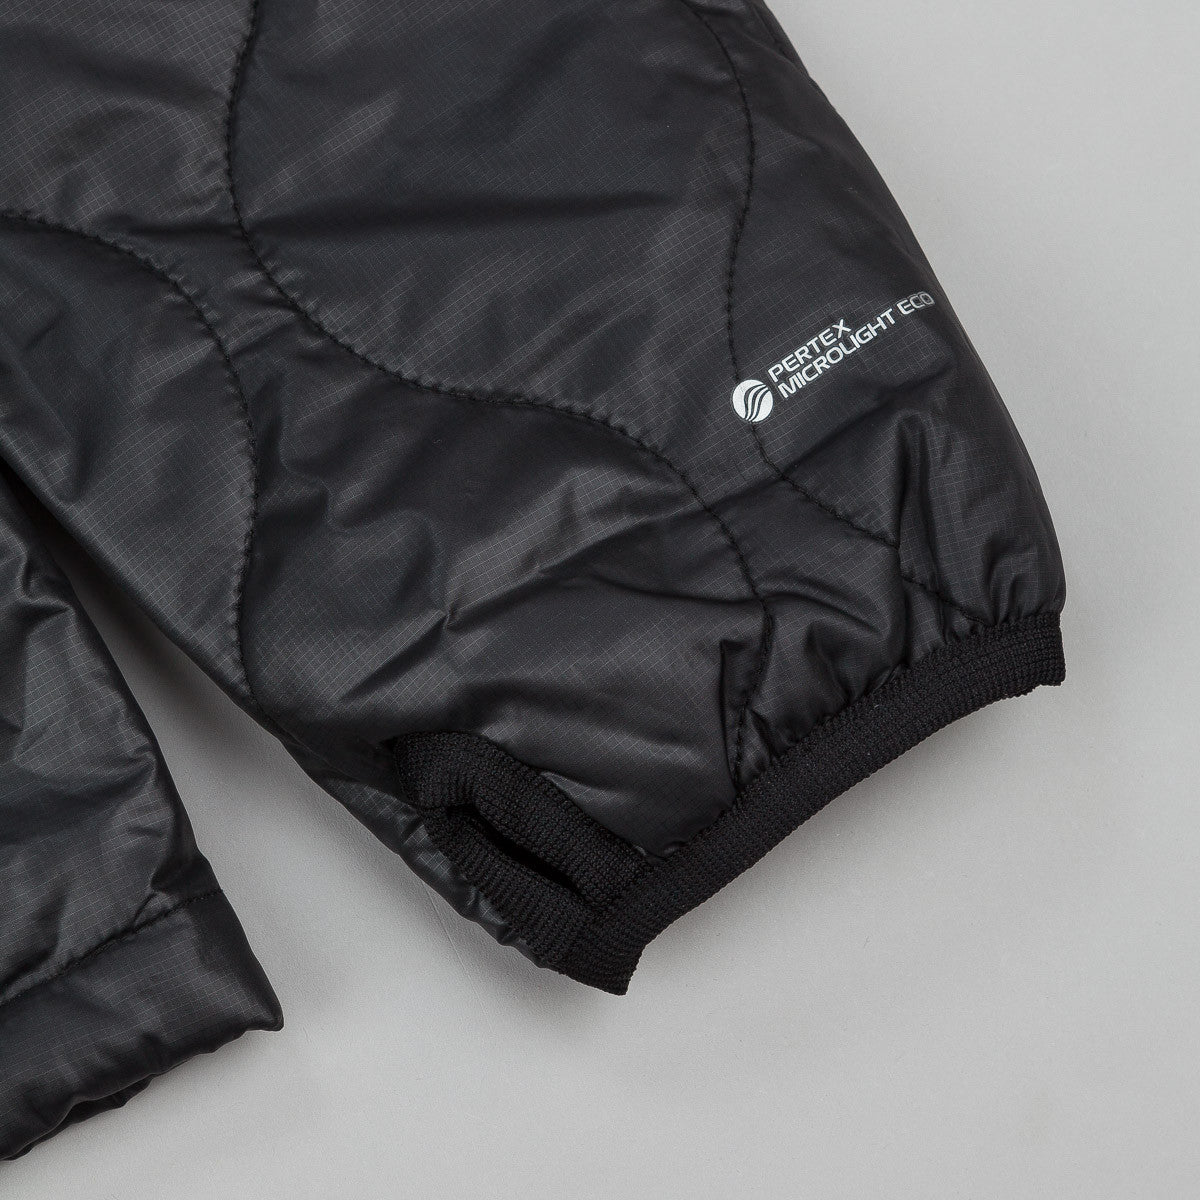 Manastash Perpri 60 Cycle Jacket - Black